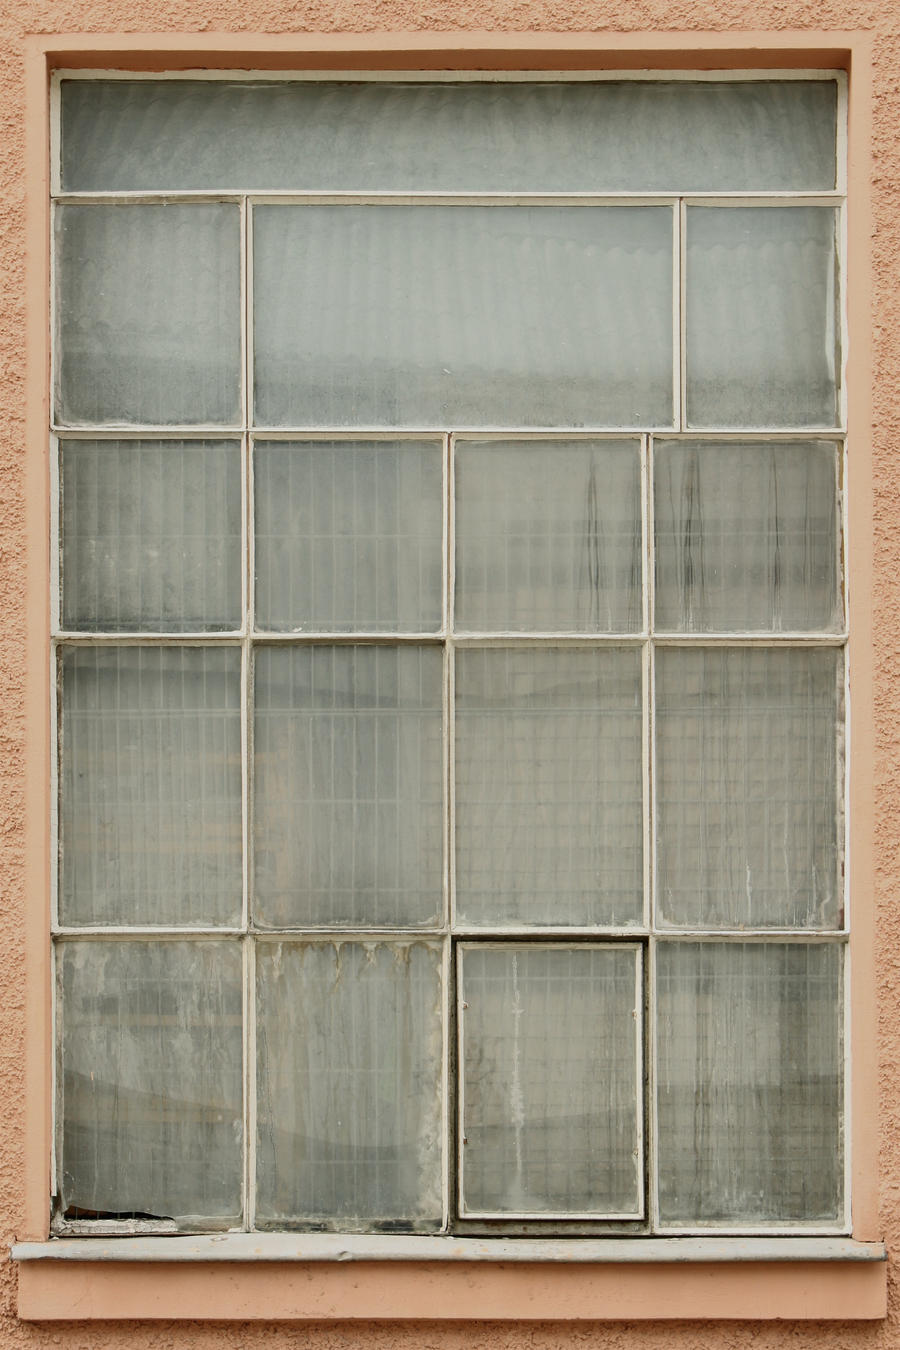 Window Texture 11 By Agf81 On Deviantart